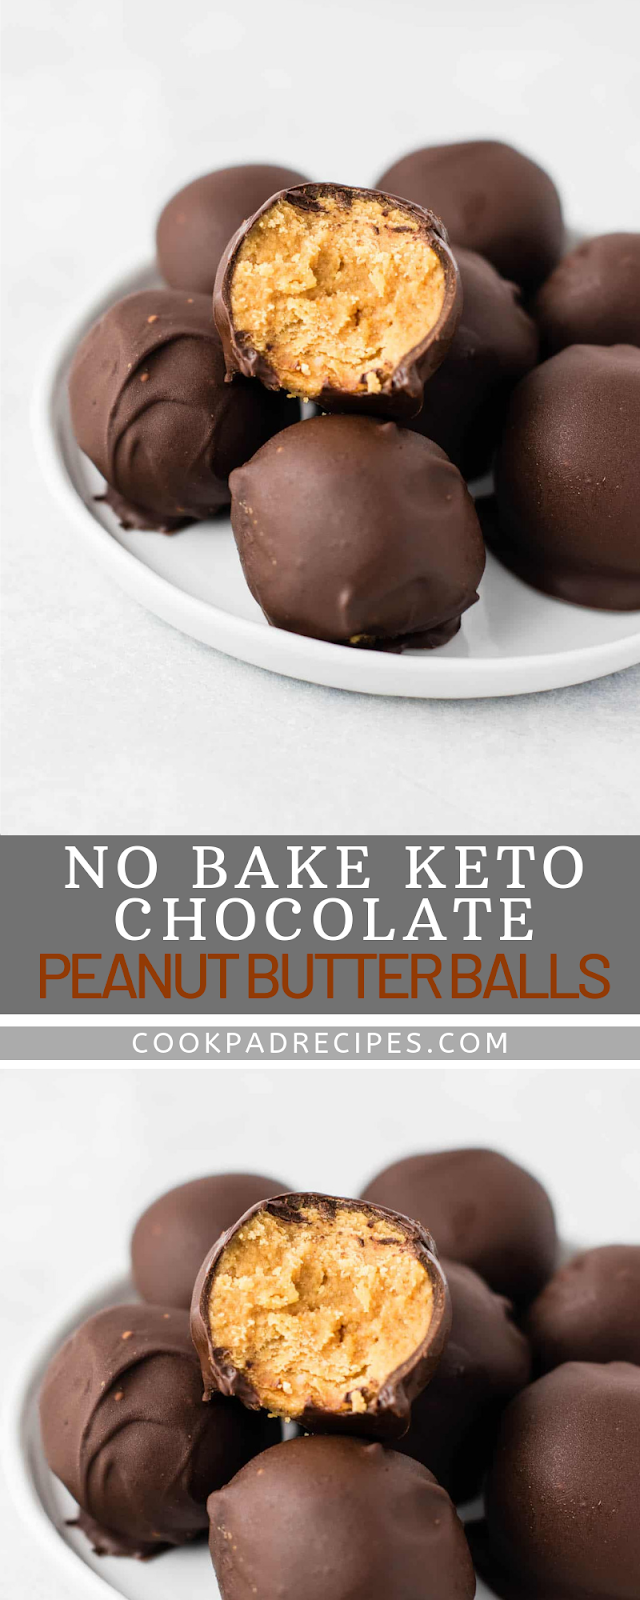 NO BAKE KETO CHOCOLATE PEANUT BUTTER BALLS (PALEO, VEGAN, LOW CARB)